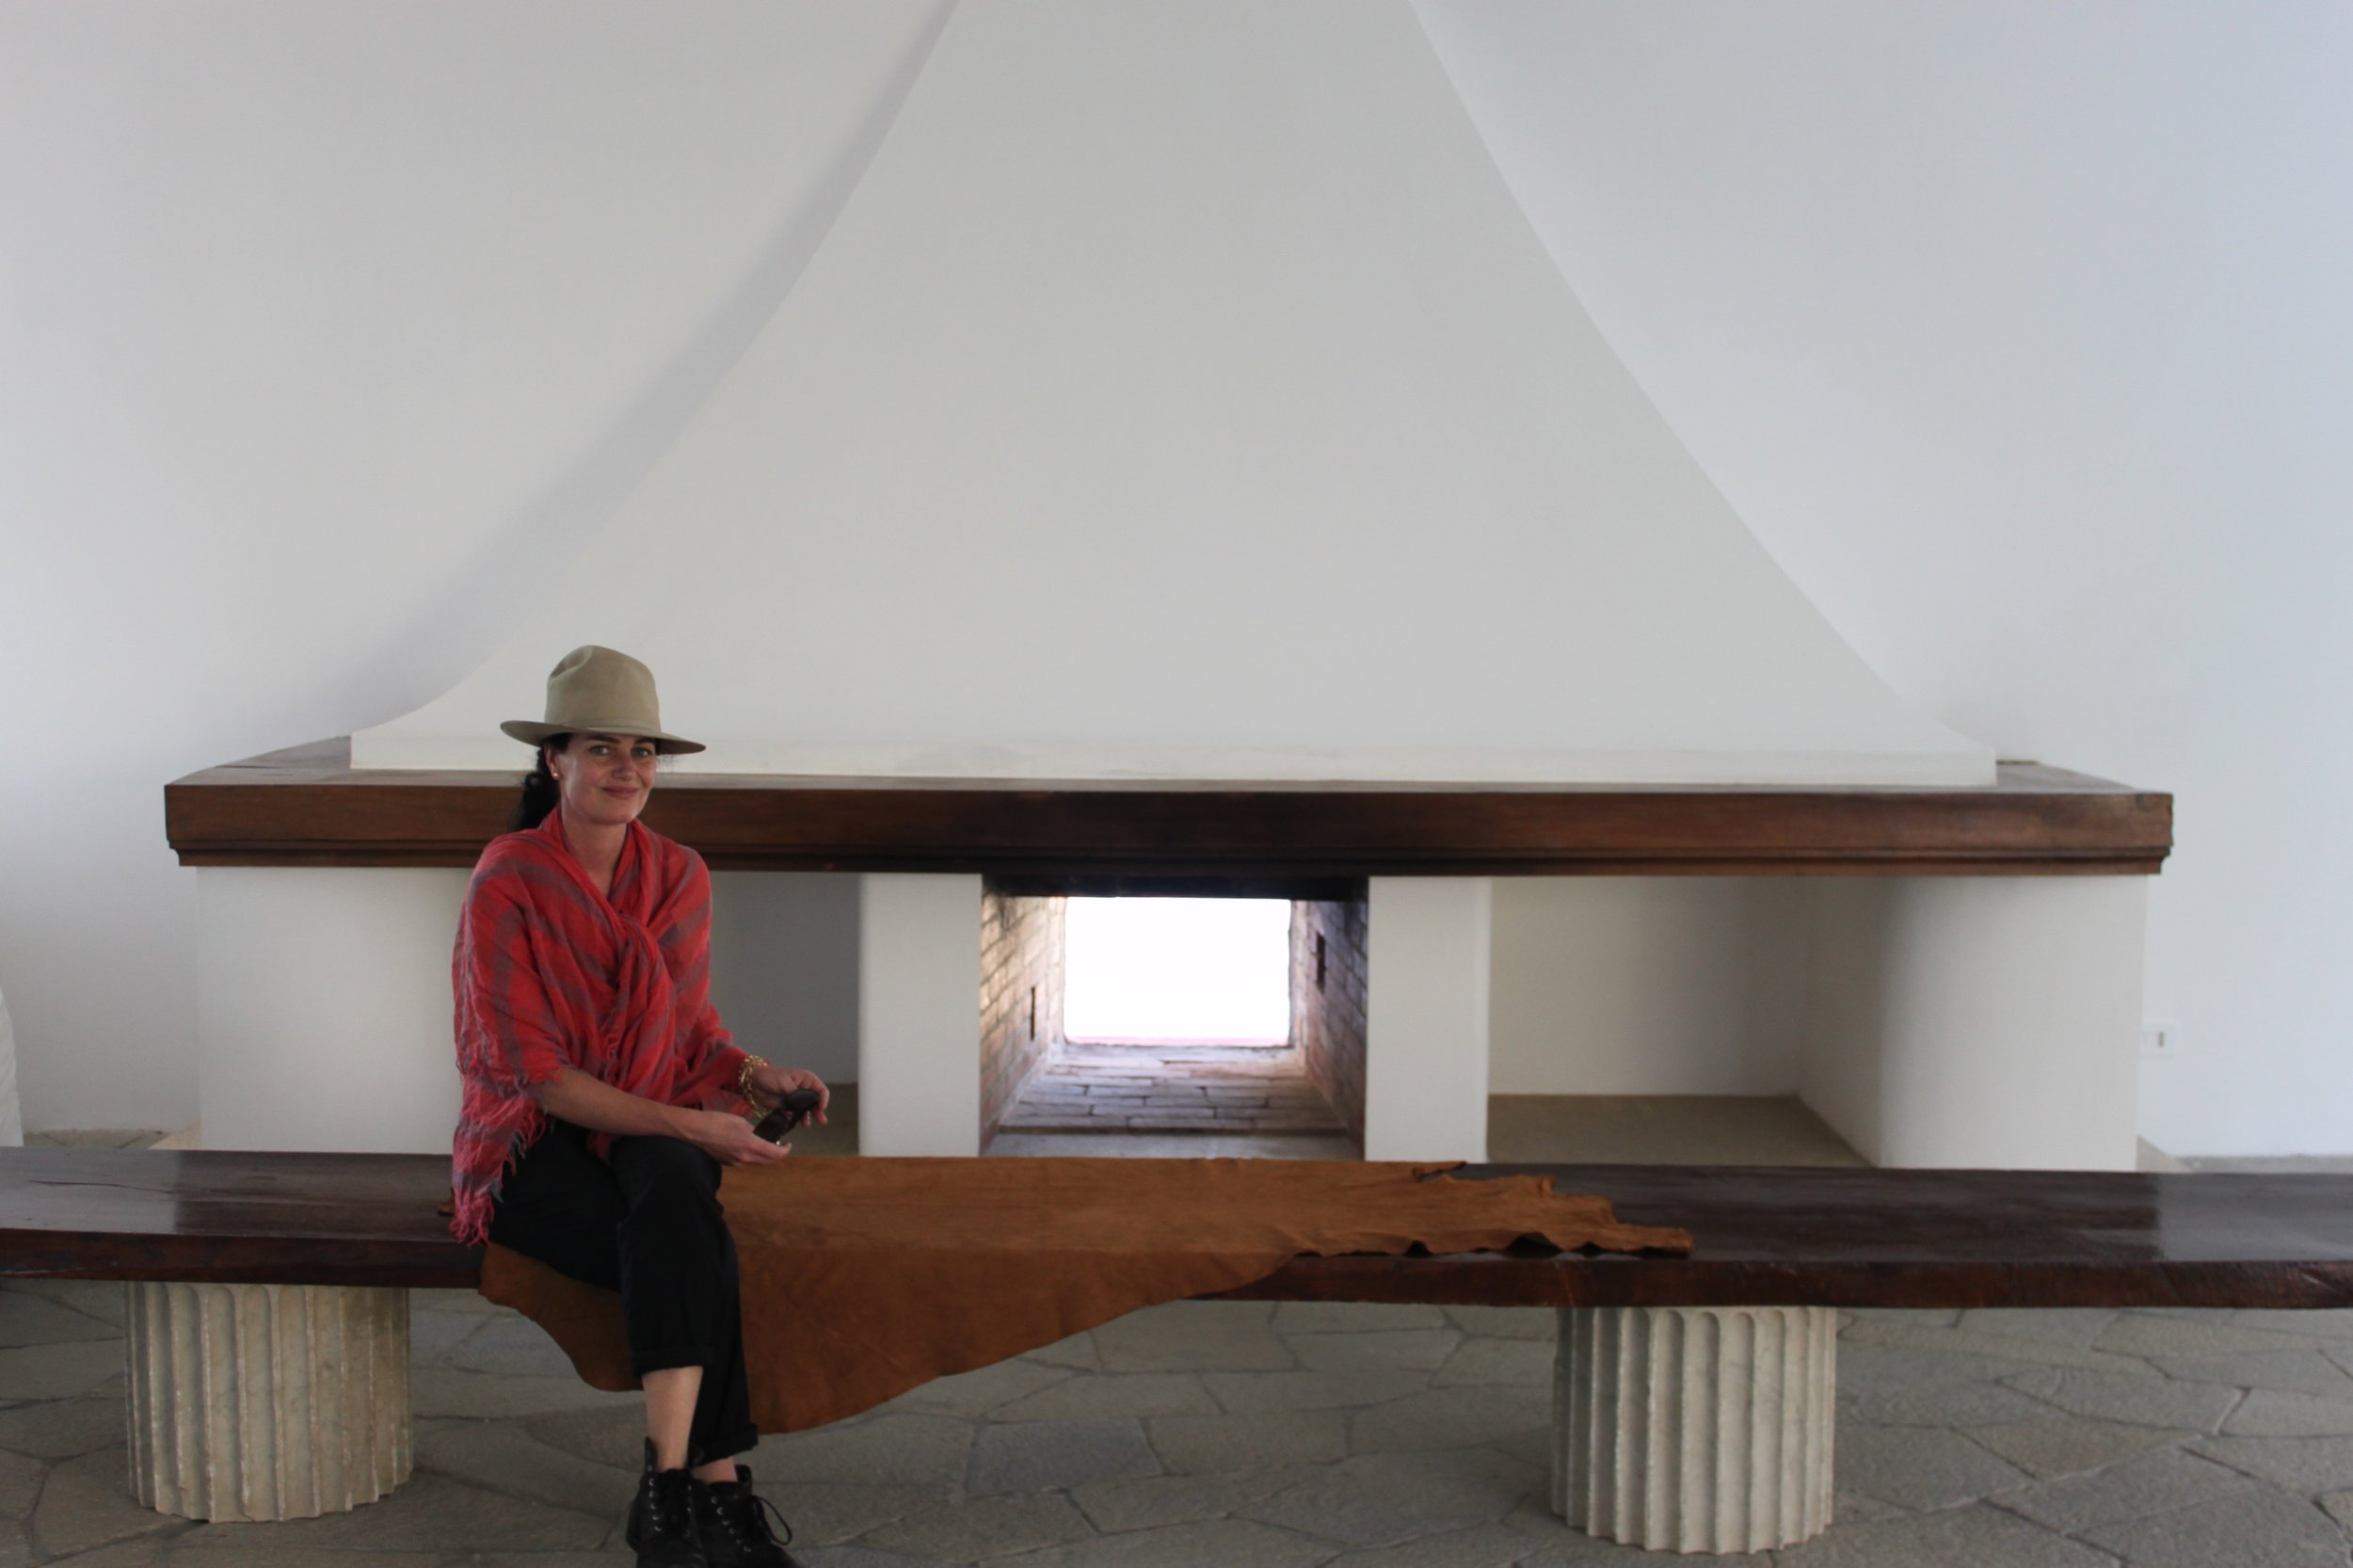 """I feel like the luckiest girl in the world sometimes. A trip to work on the island of Capri at the famous Casa Malaparte - designed by Curzio Malaparte which was in the famous jean Luc Godard film """"Contempt"""" which was pivotal for me in film history and my motivation to work in design in film."""